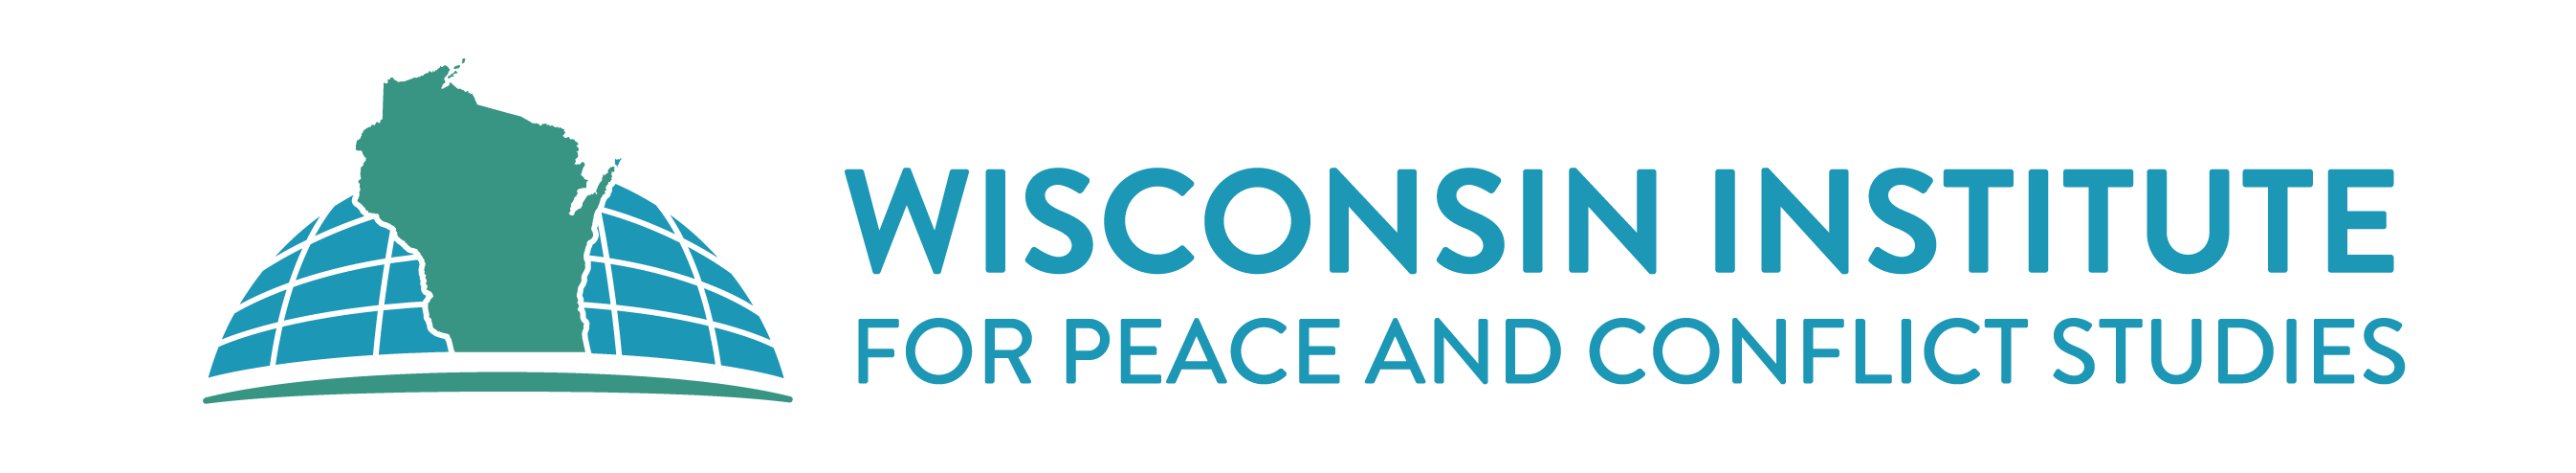 Wisconsin Institute for Peace and Conflict Studies